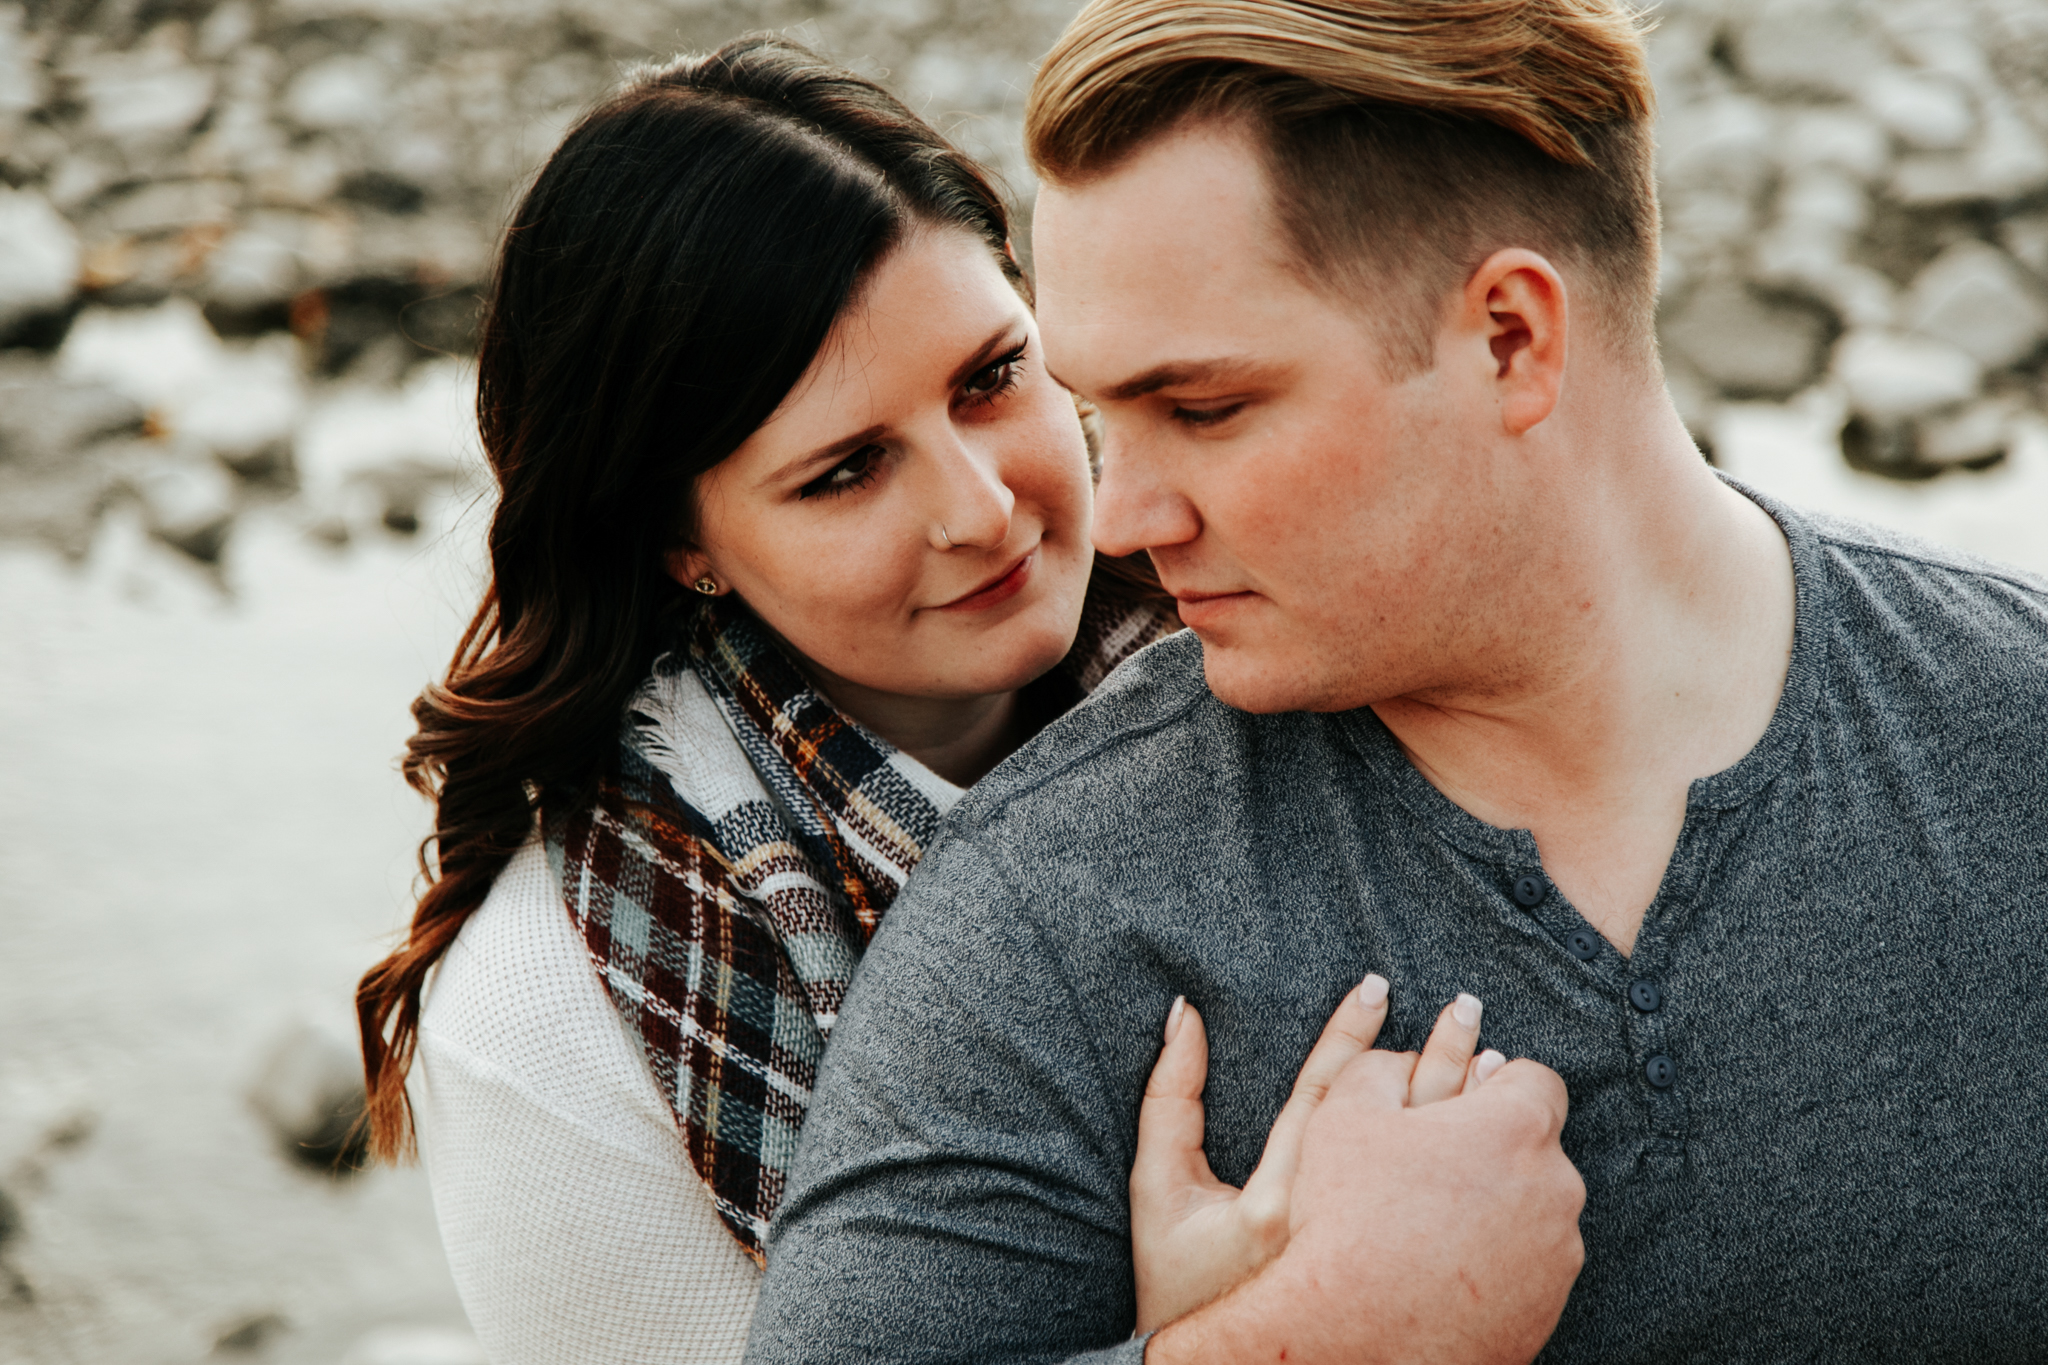 lethbridge-photographer-love-and-be-loved-photography-christy-bryan-fall-autumn-engagement-photo-image-picture-38.jpg